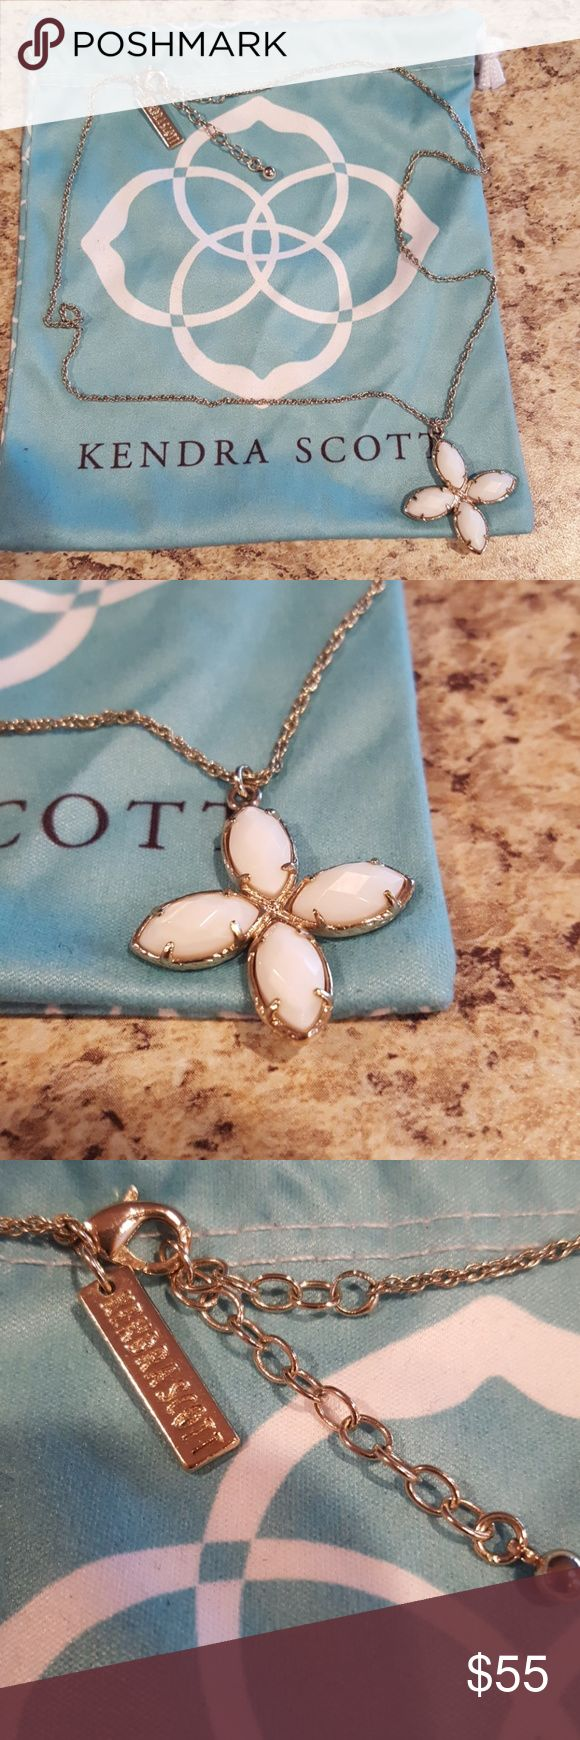 """Kendra Scott 20"""" Necklace And Dust Bag Nice condition! Kendra Scott Jewelry Necklaces"""